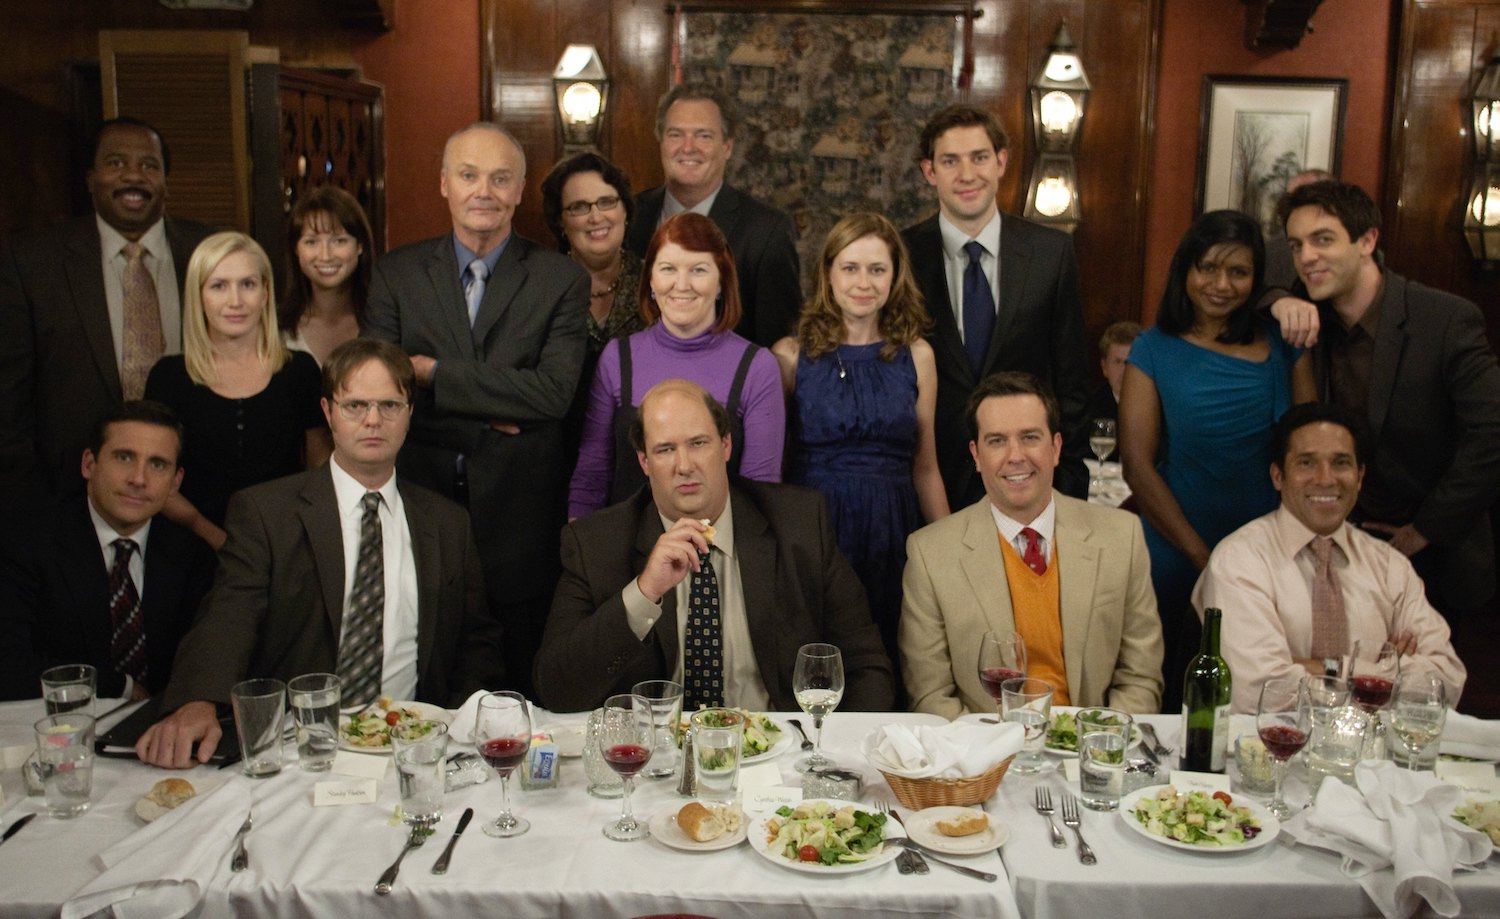 'The Office' cast pose during Jim and Pam's rehearsal dinner.